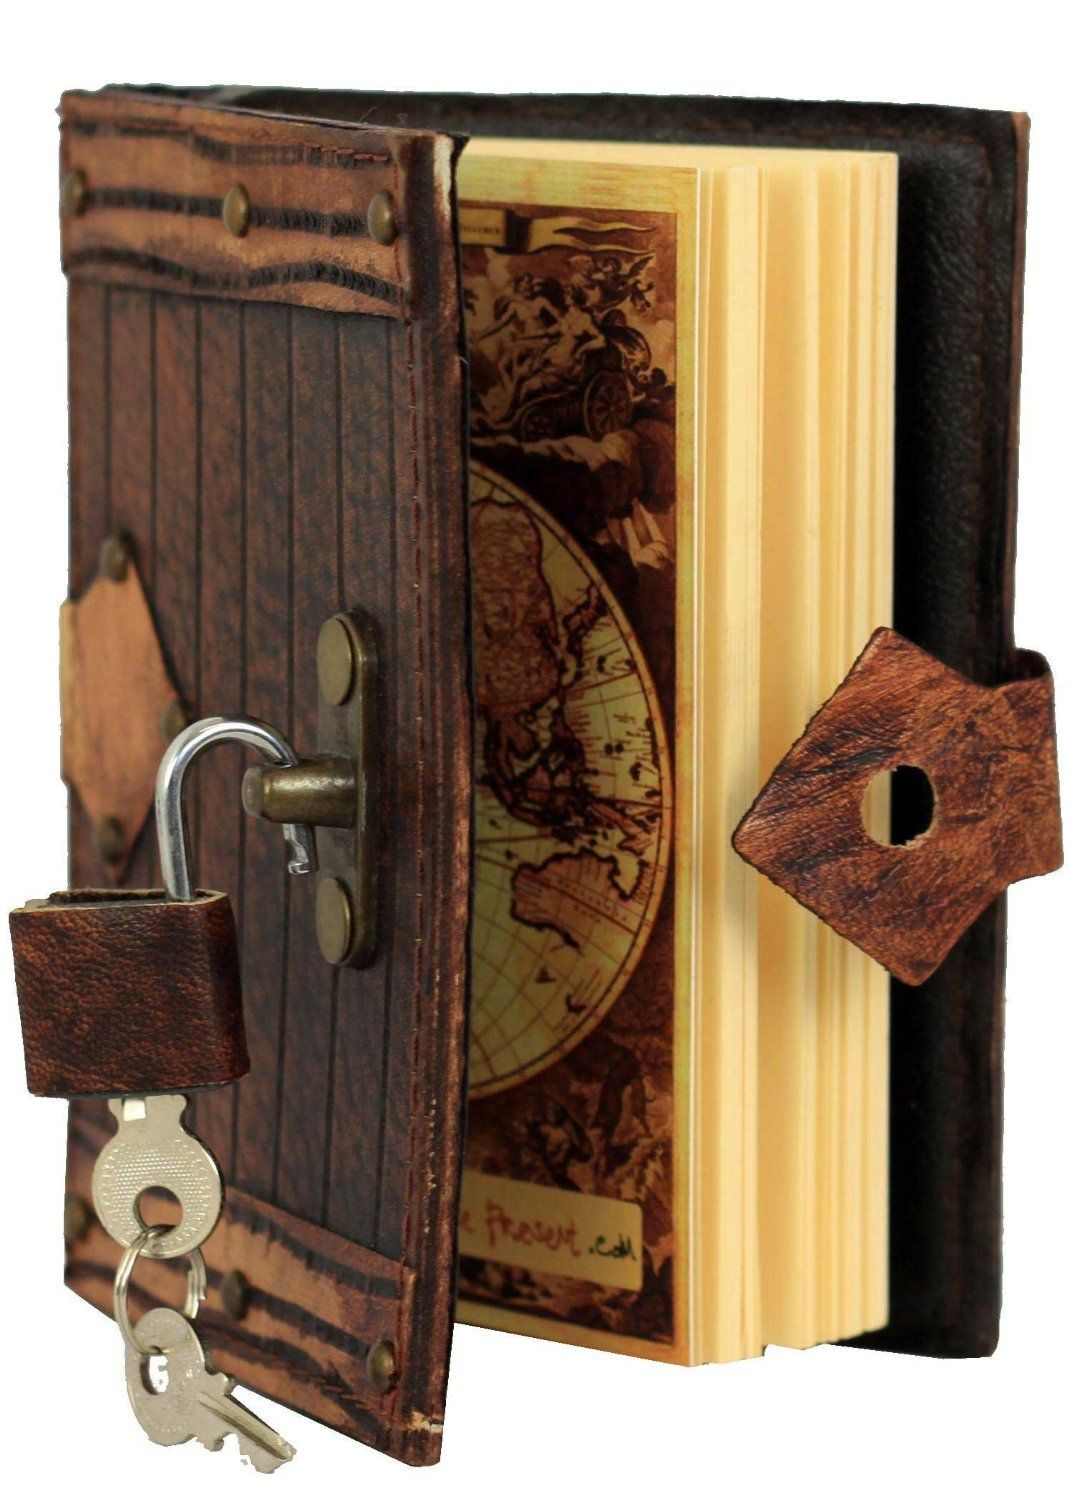 Amazon.com : Engraved Lined Pattern Padlock Refillable Leather Journal / Diary / Lock / Brown / Notebook / Plain Paper $30